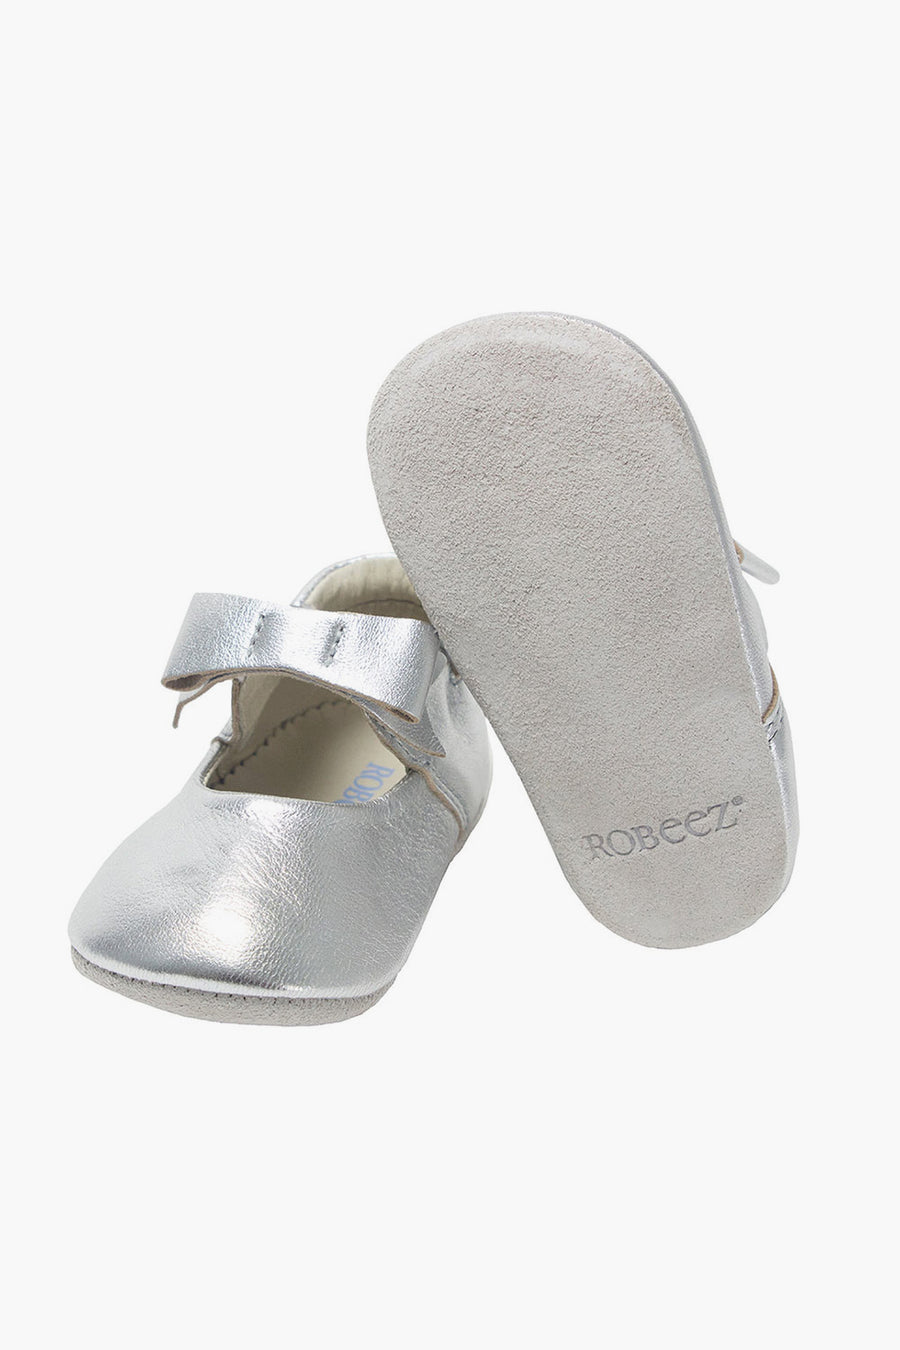 Robeez Sofia Baby Girls Shoes - Silver Metallic